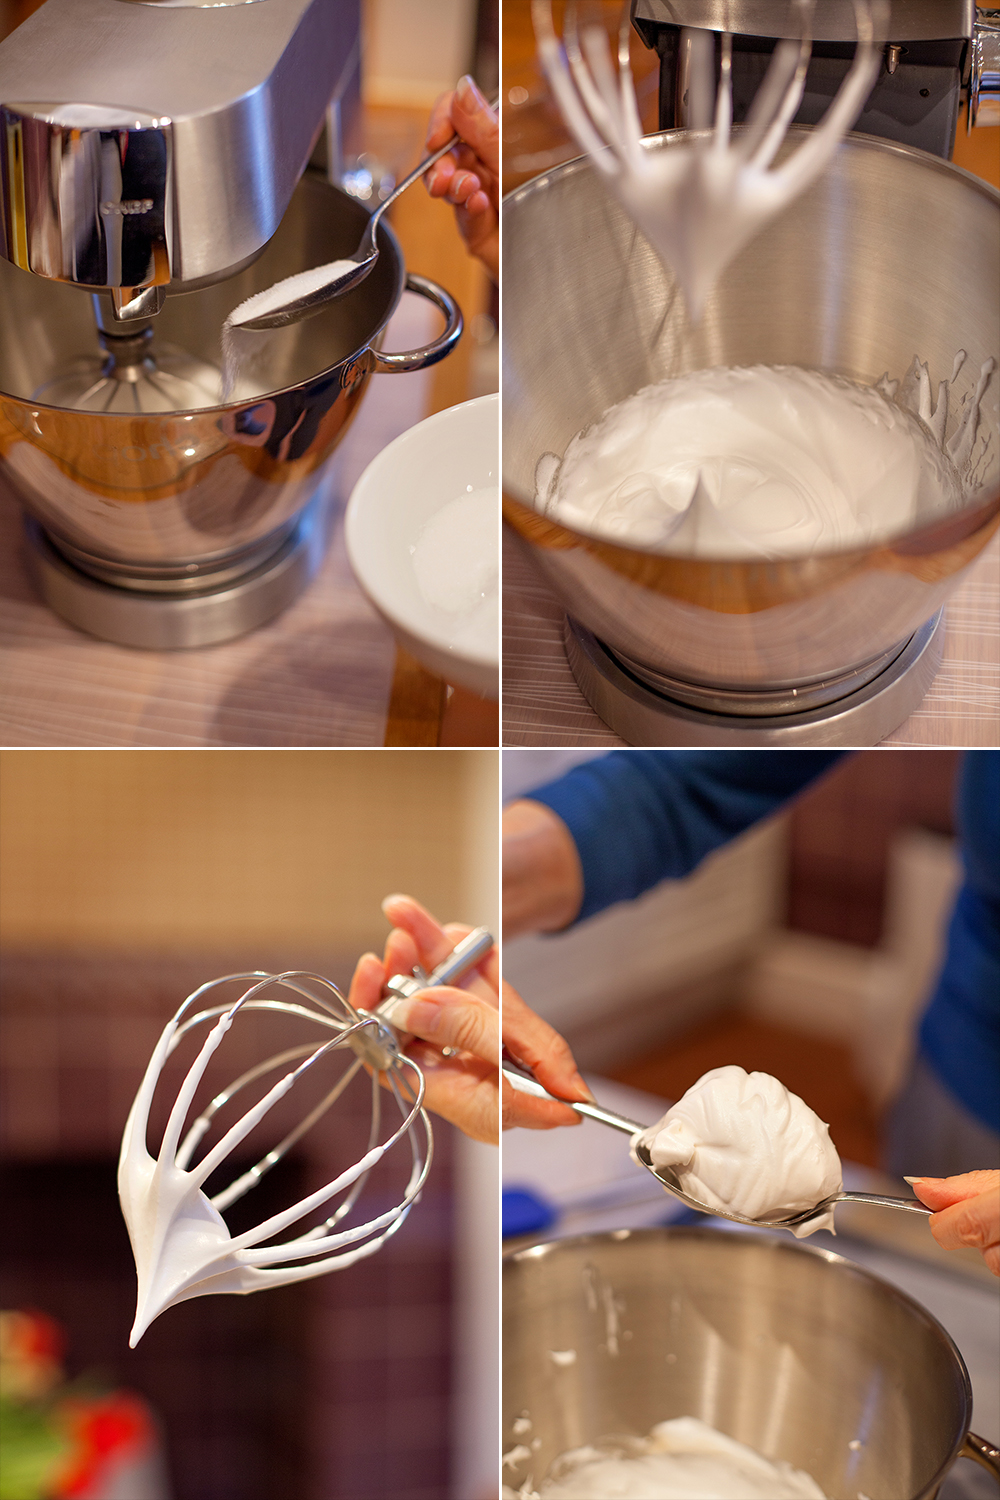 meringue making montage.jpg